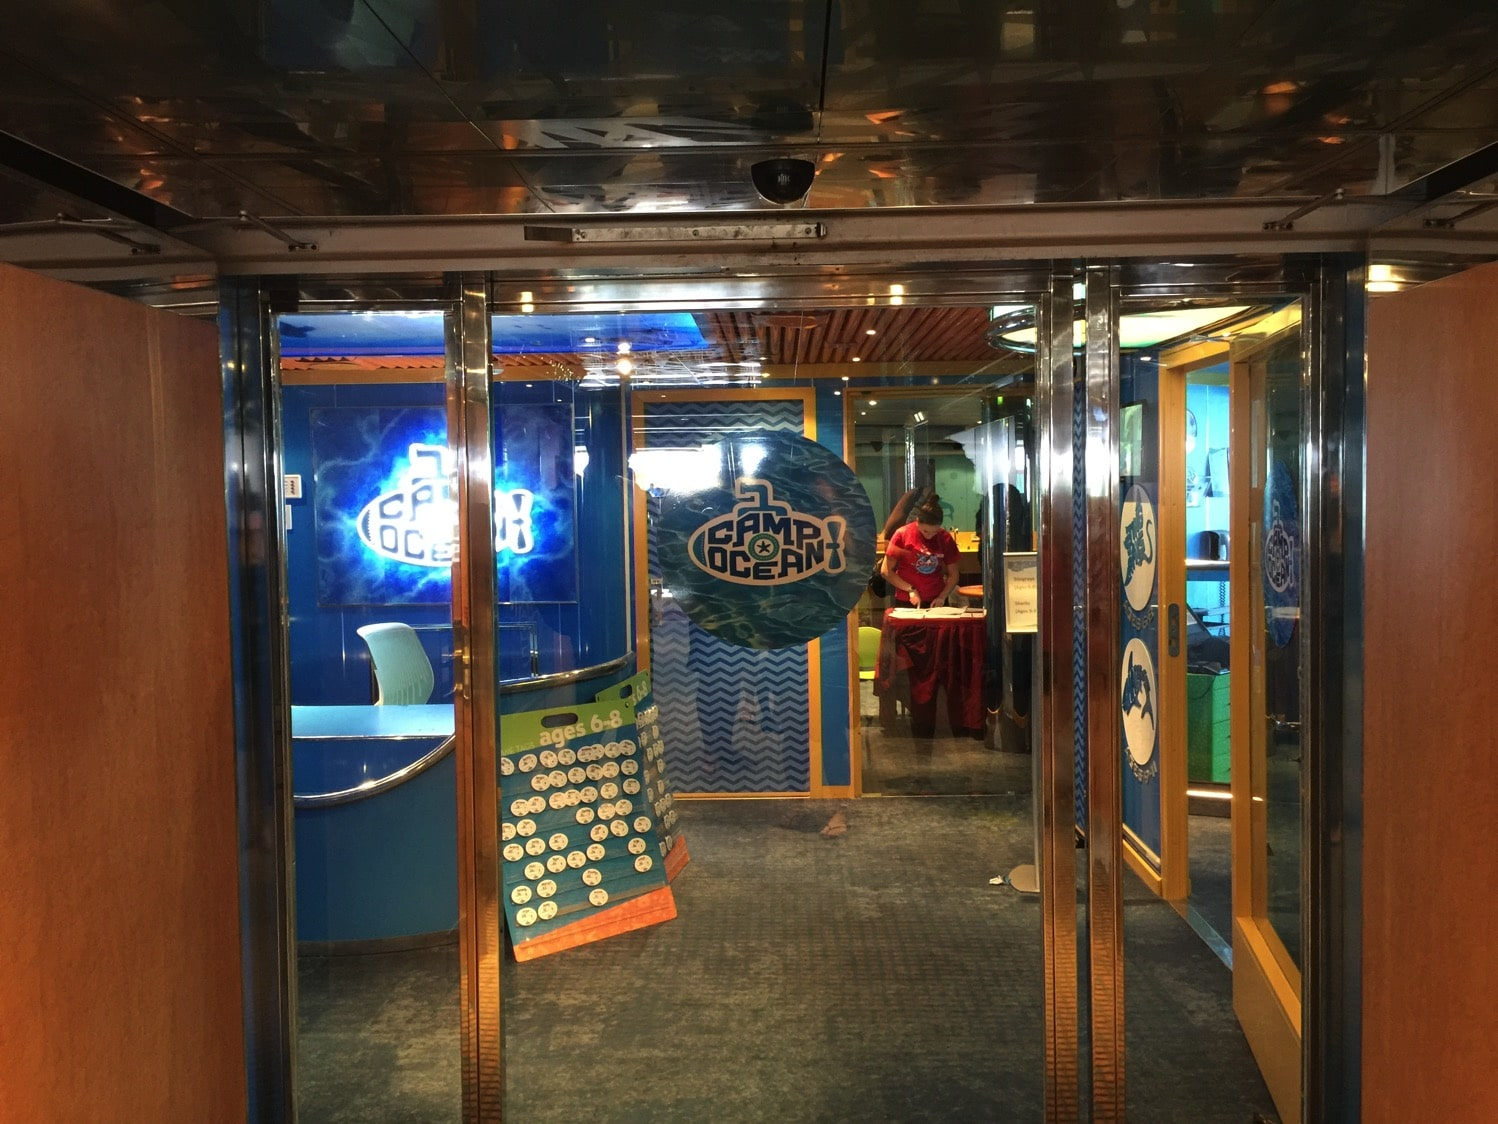 Camp Ocean | Family Cruise Carnival